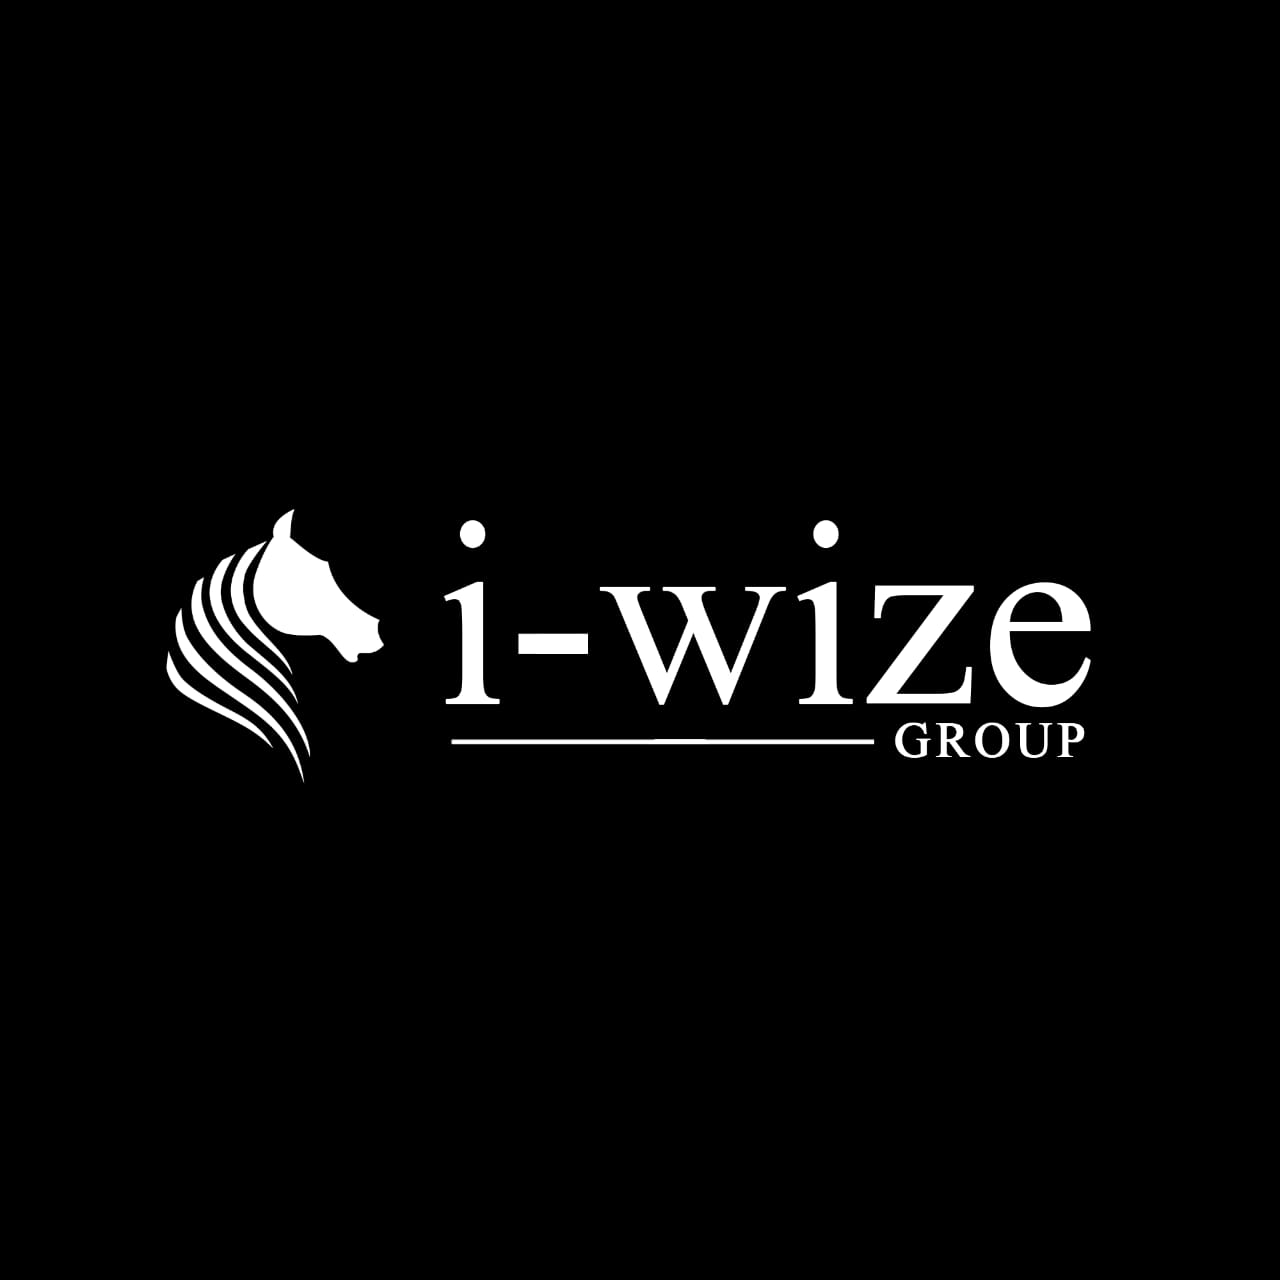 I-WIZE Group: Helping You Build Multiple Income Sources